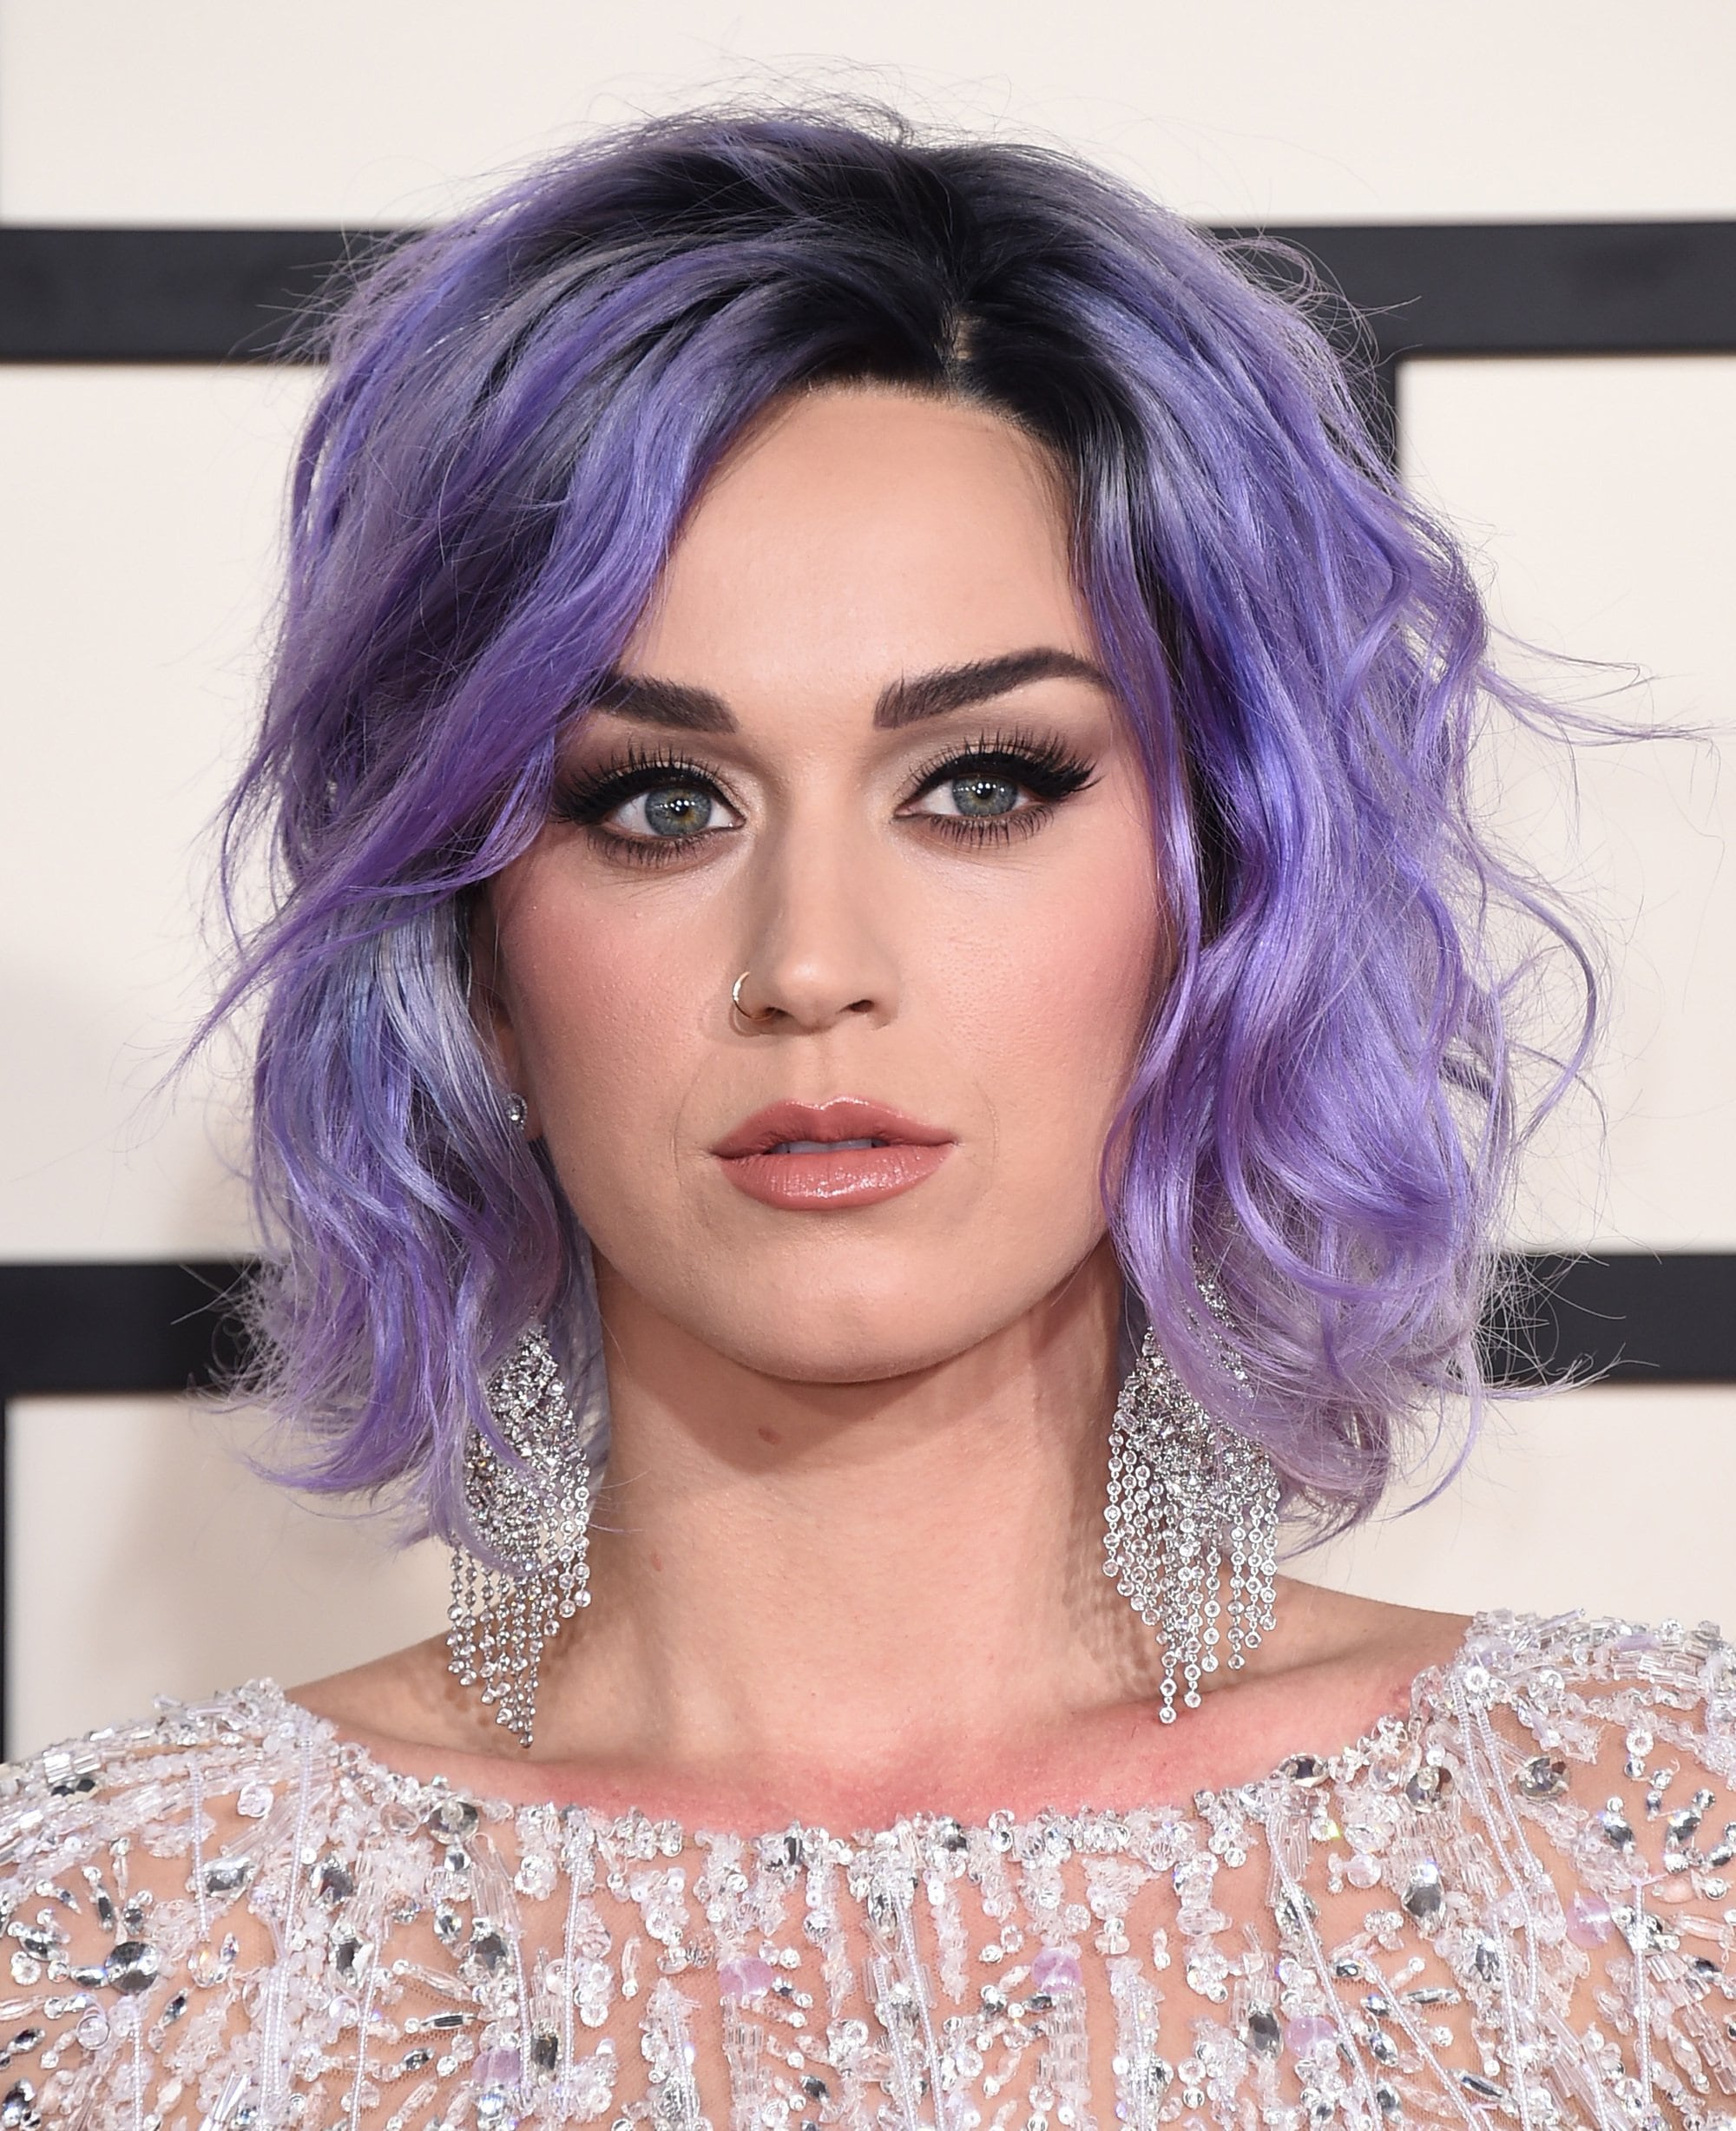 Katy Perry long bob purple hair colour with black roots and wavy finish